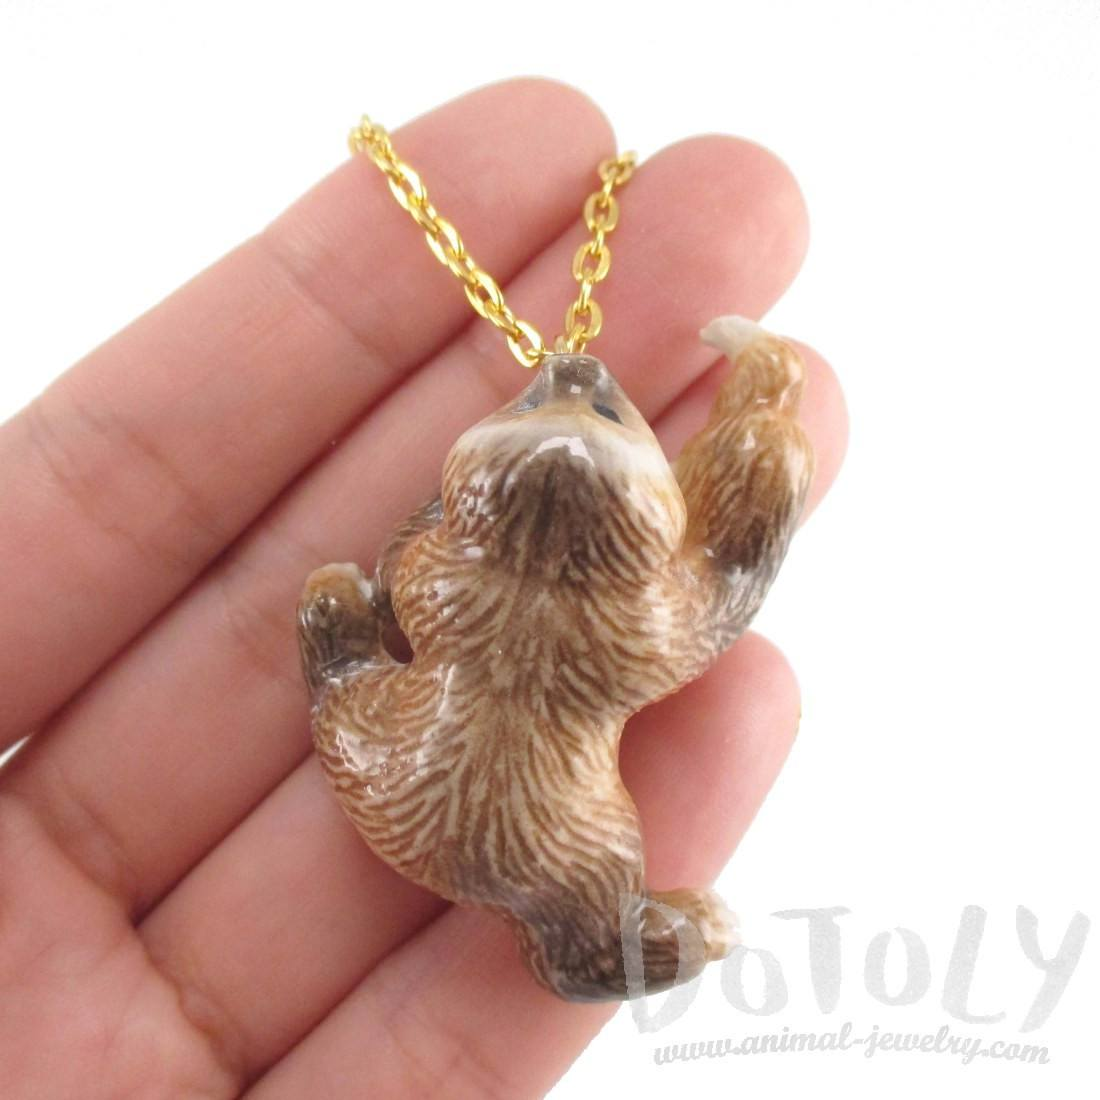 Two Toed Sloth Shaped Dangling Ceramic Animal Pendant Necklace